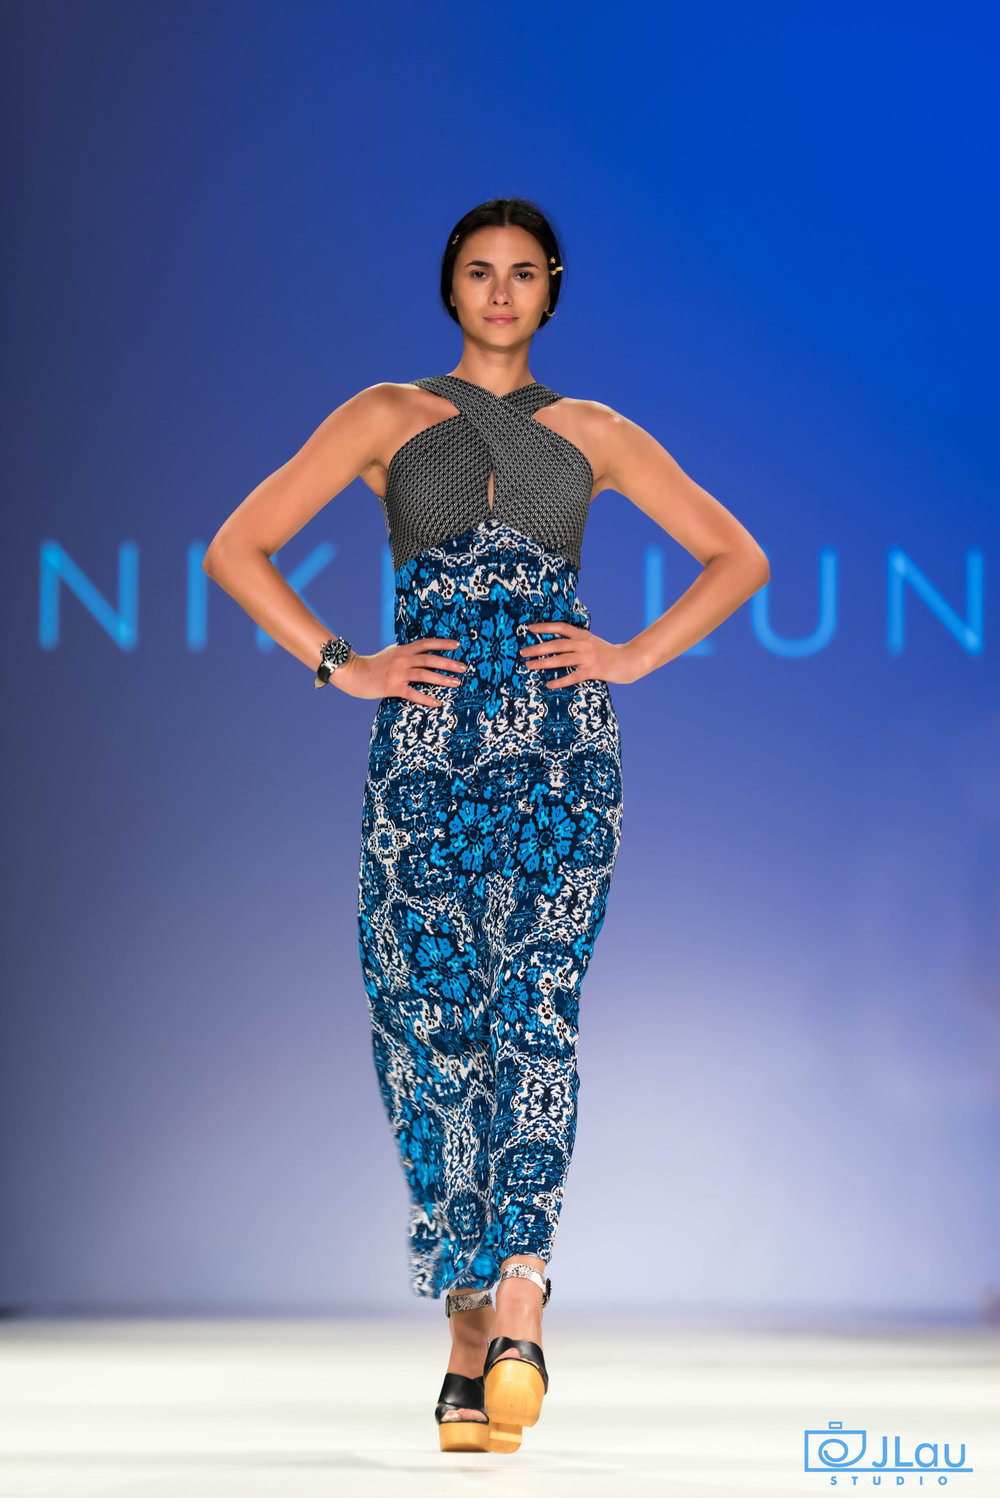 Style Week Fashion Designer: Nikki Lund